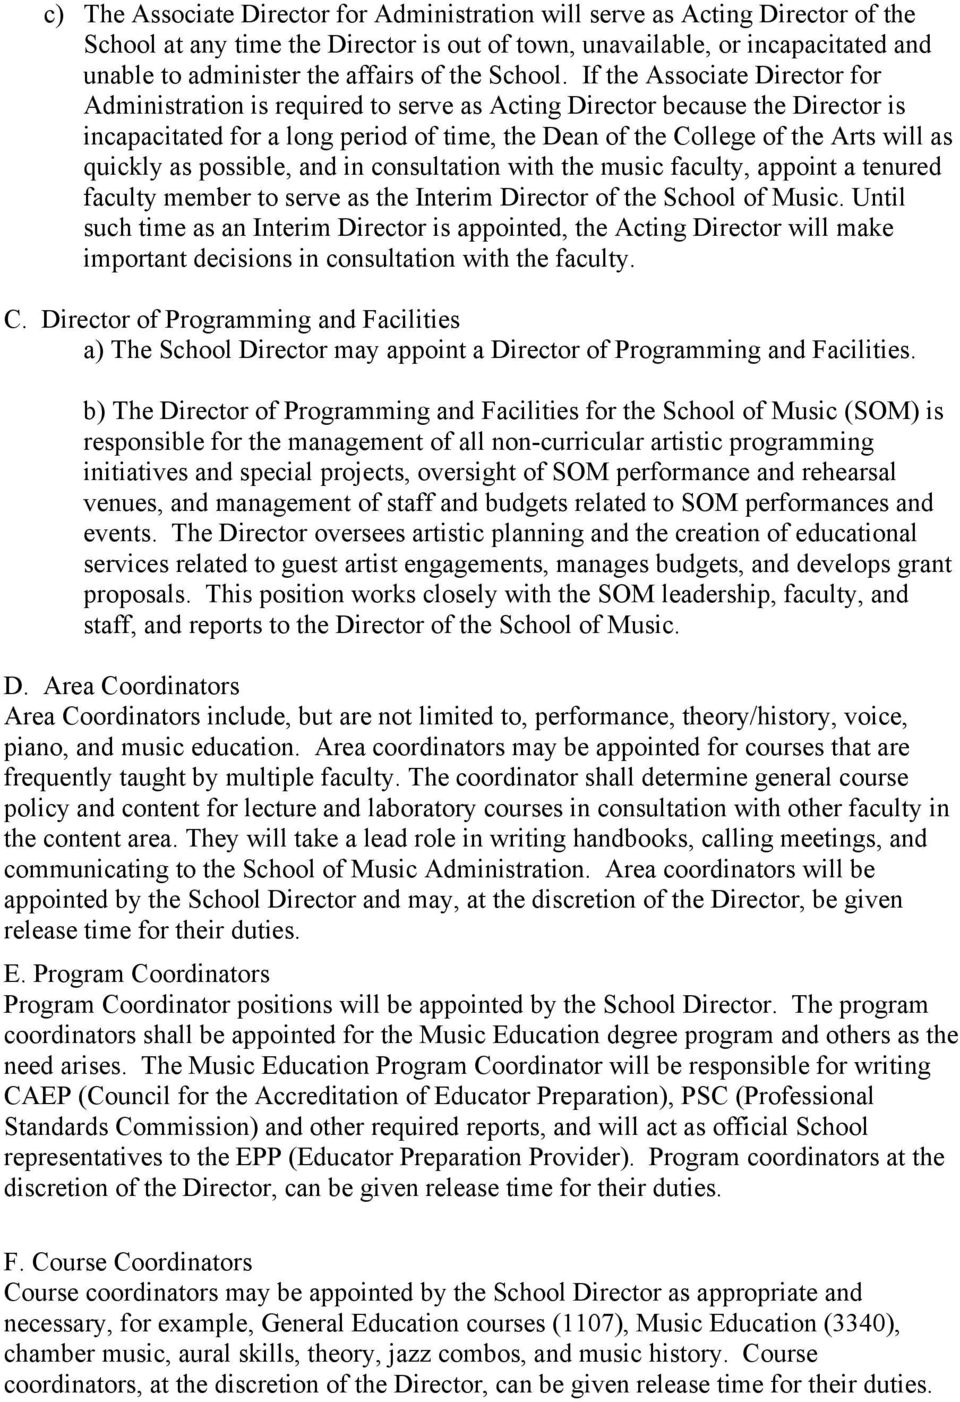 If the Associate Director for Administration is required to serve as Acting Director because the Director is incapacitated for a long period of time, the Dean of the College of the Arts will as